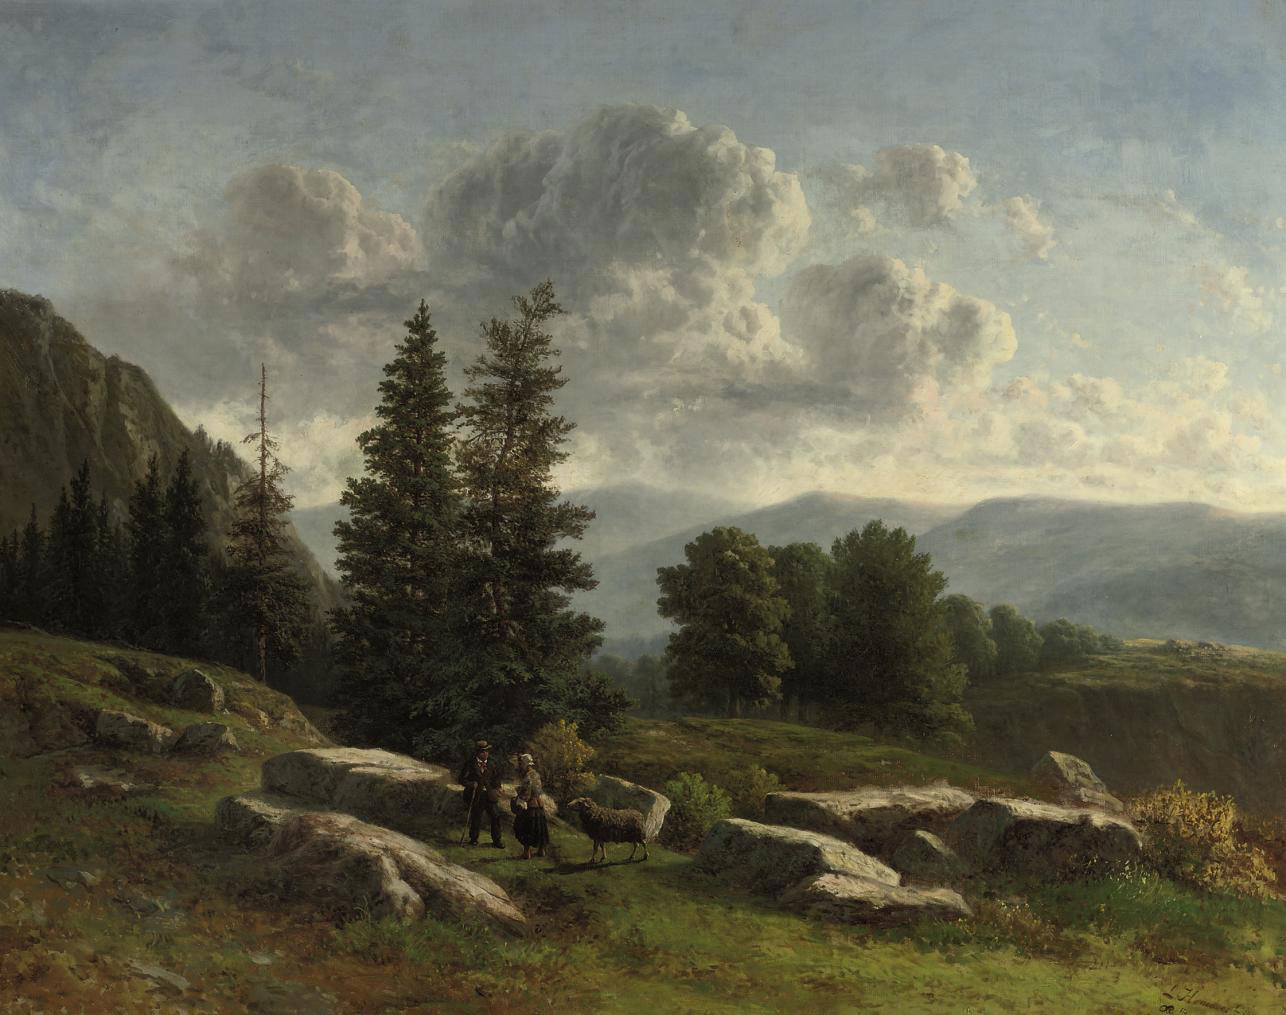 Travellers in mountain landscape